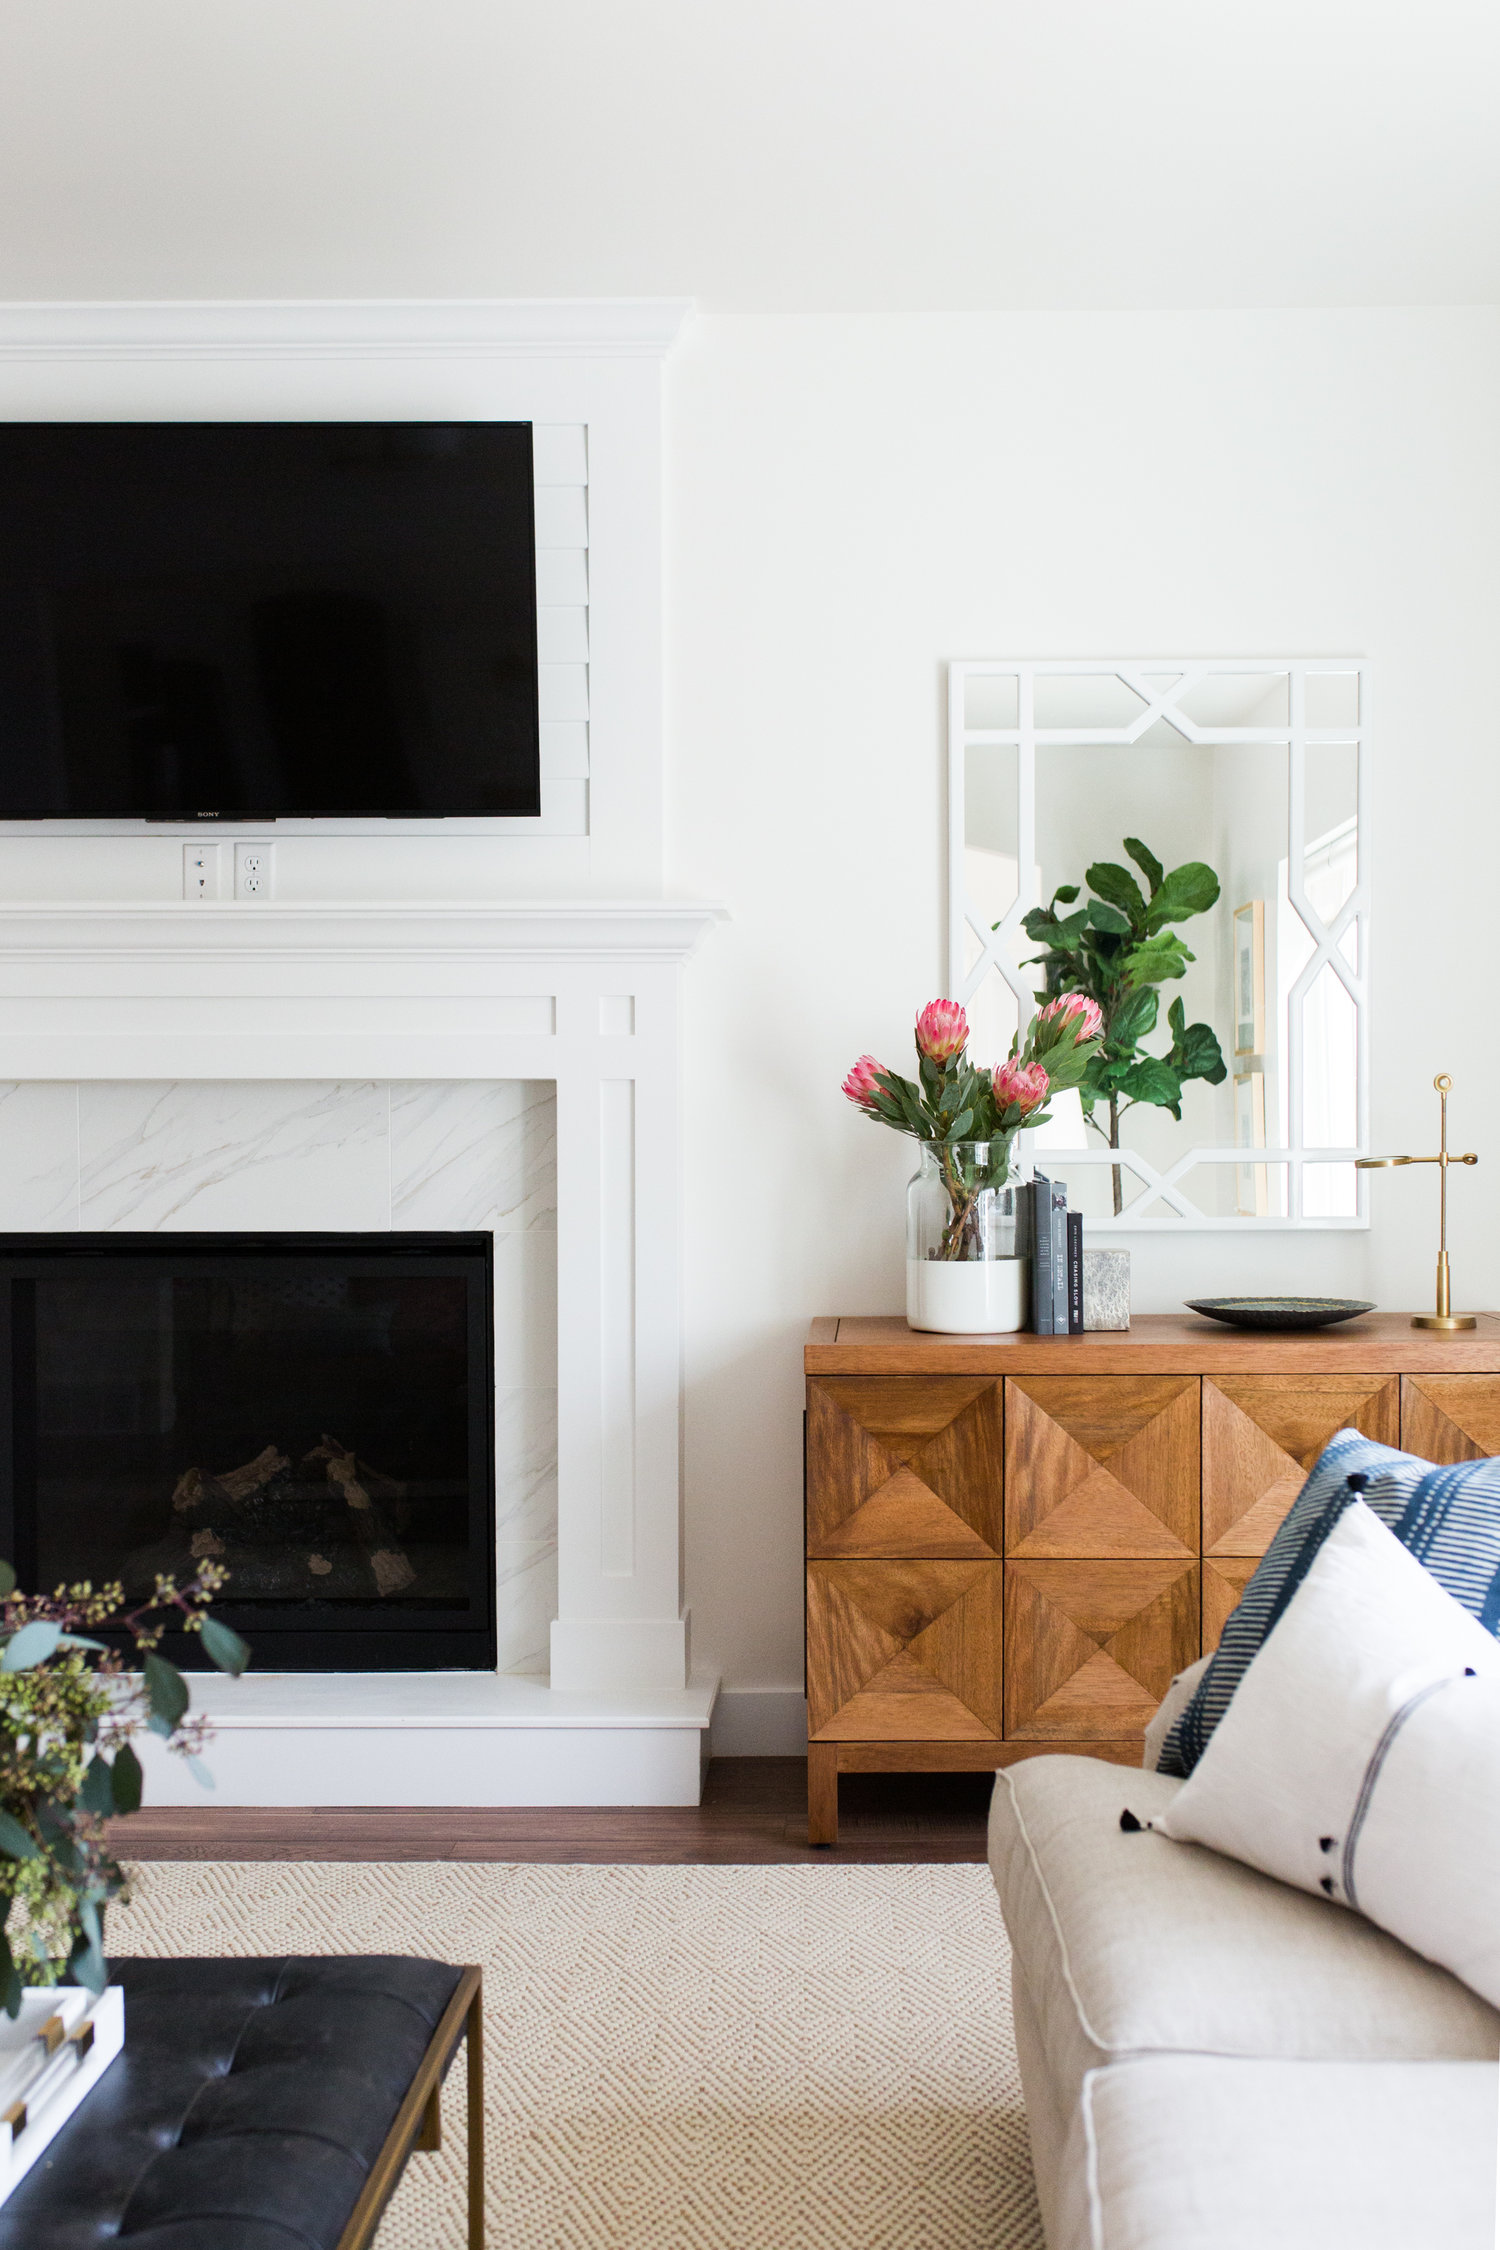 White love seat in front of white fireplace